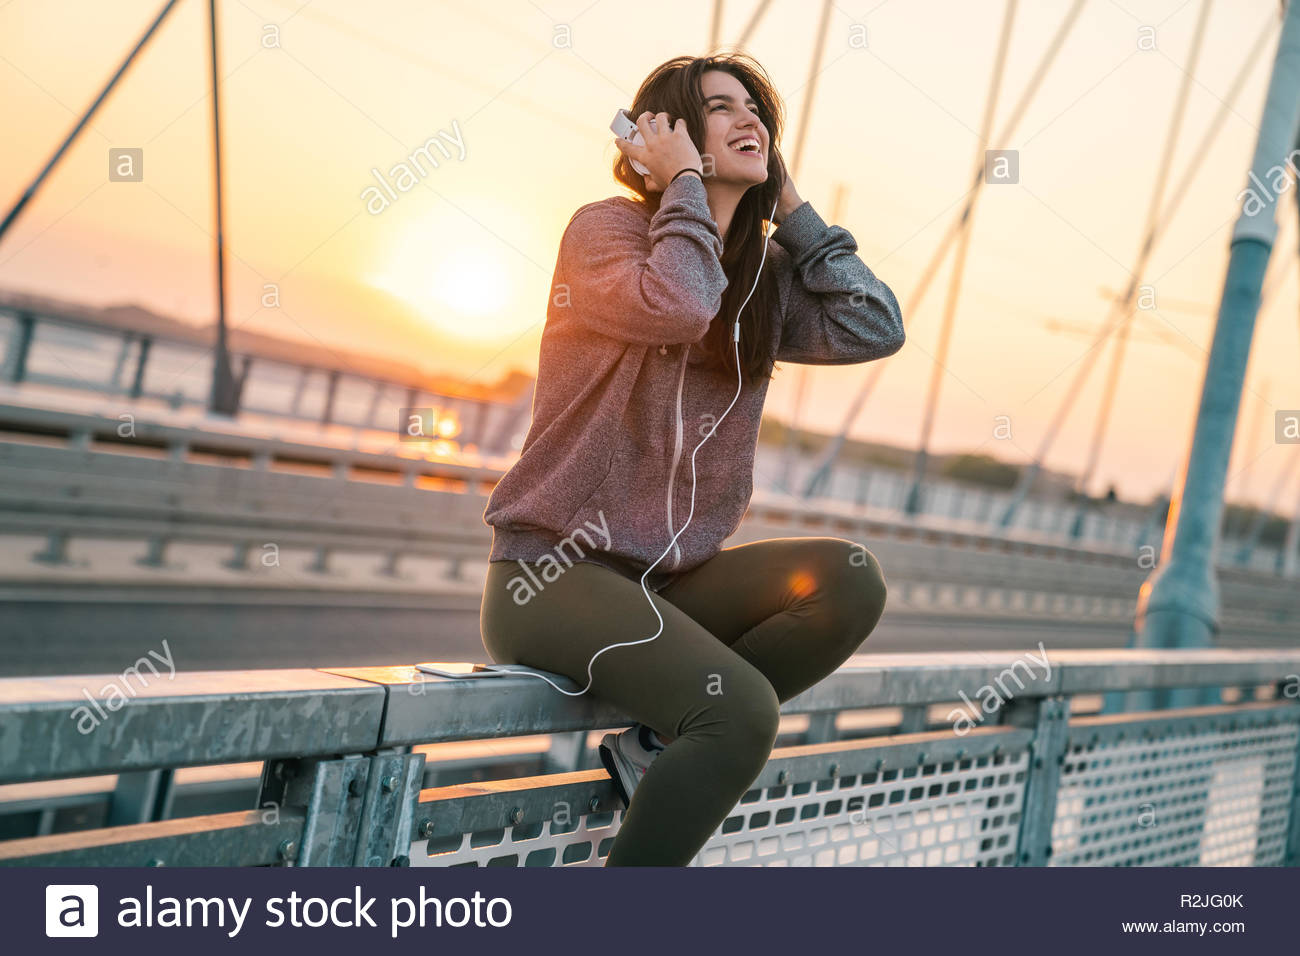 Cheerful young sportswoman smiling while listening to music while sitting on a bridge in the morning. - Stock Image